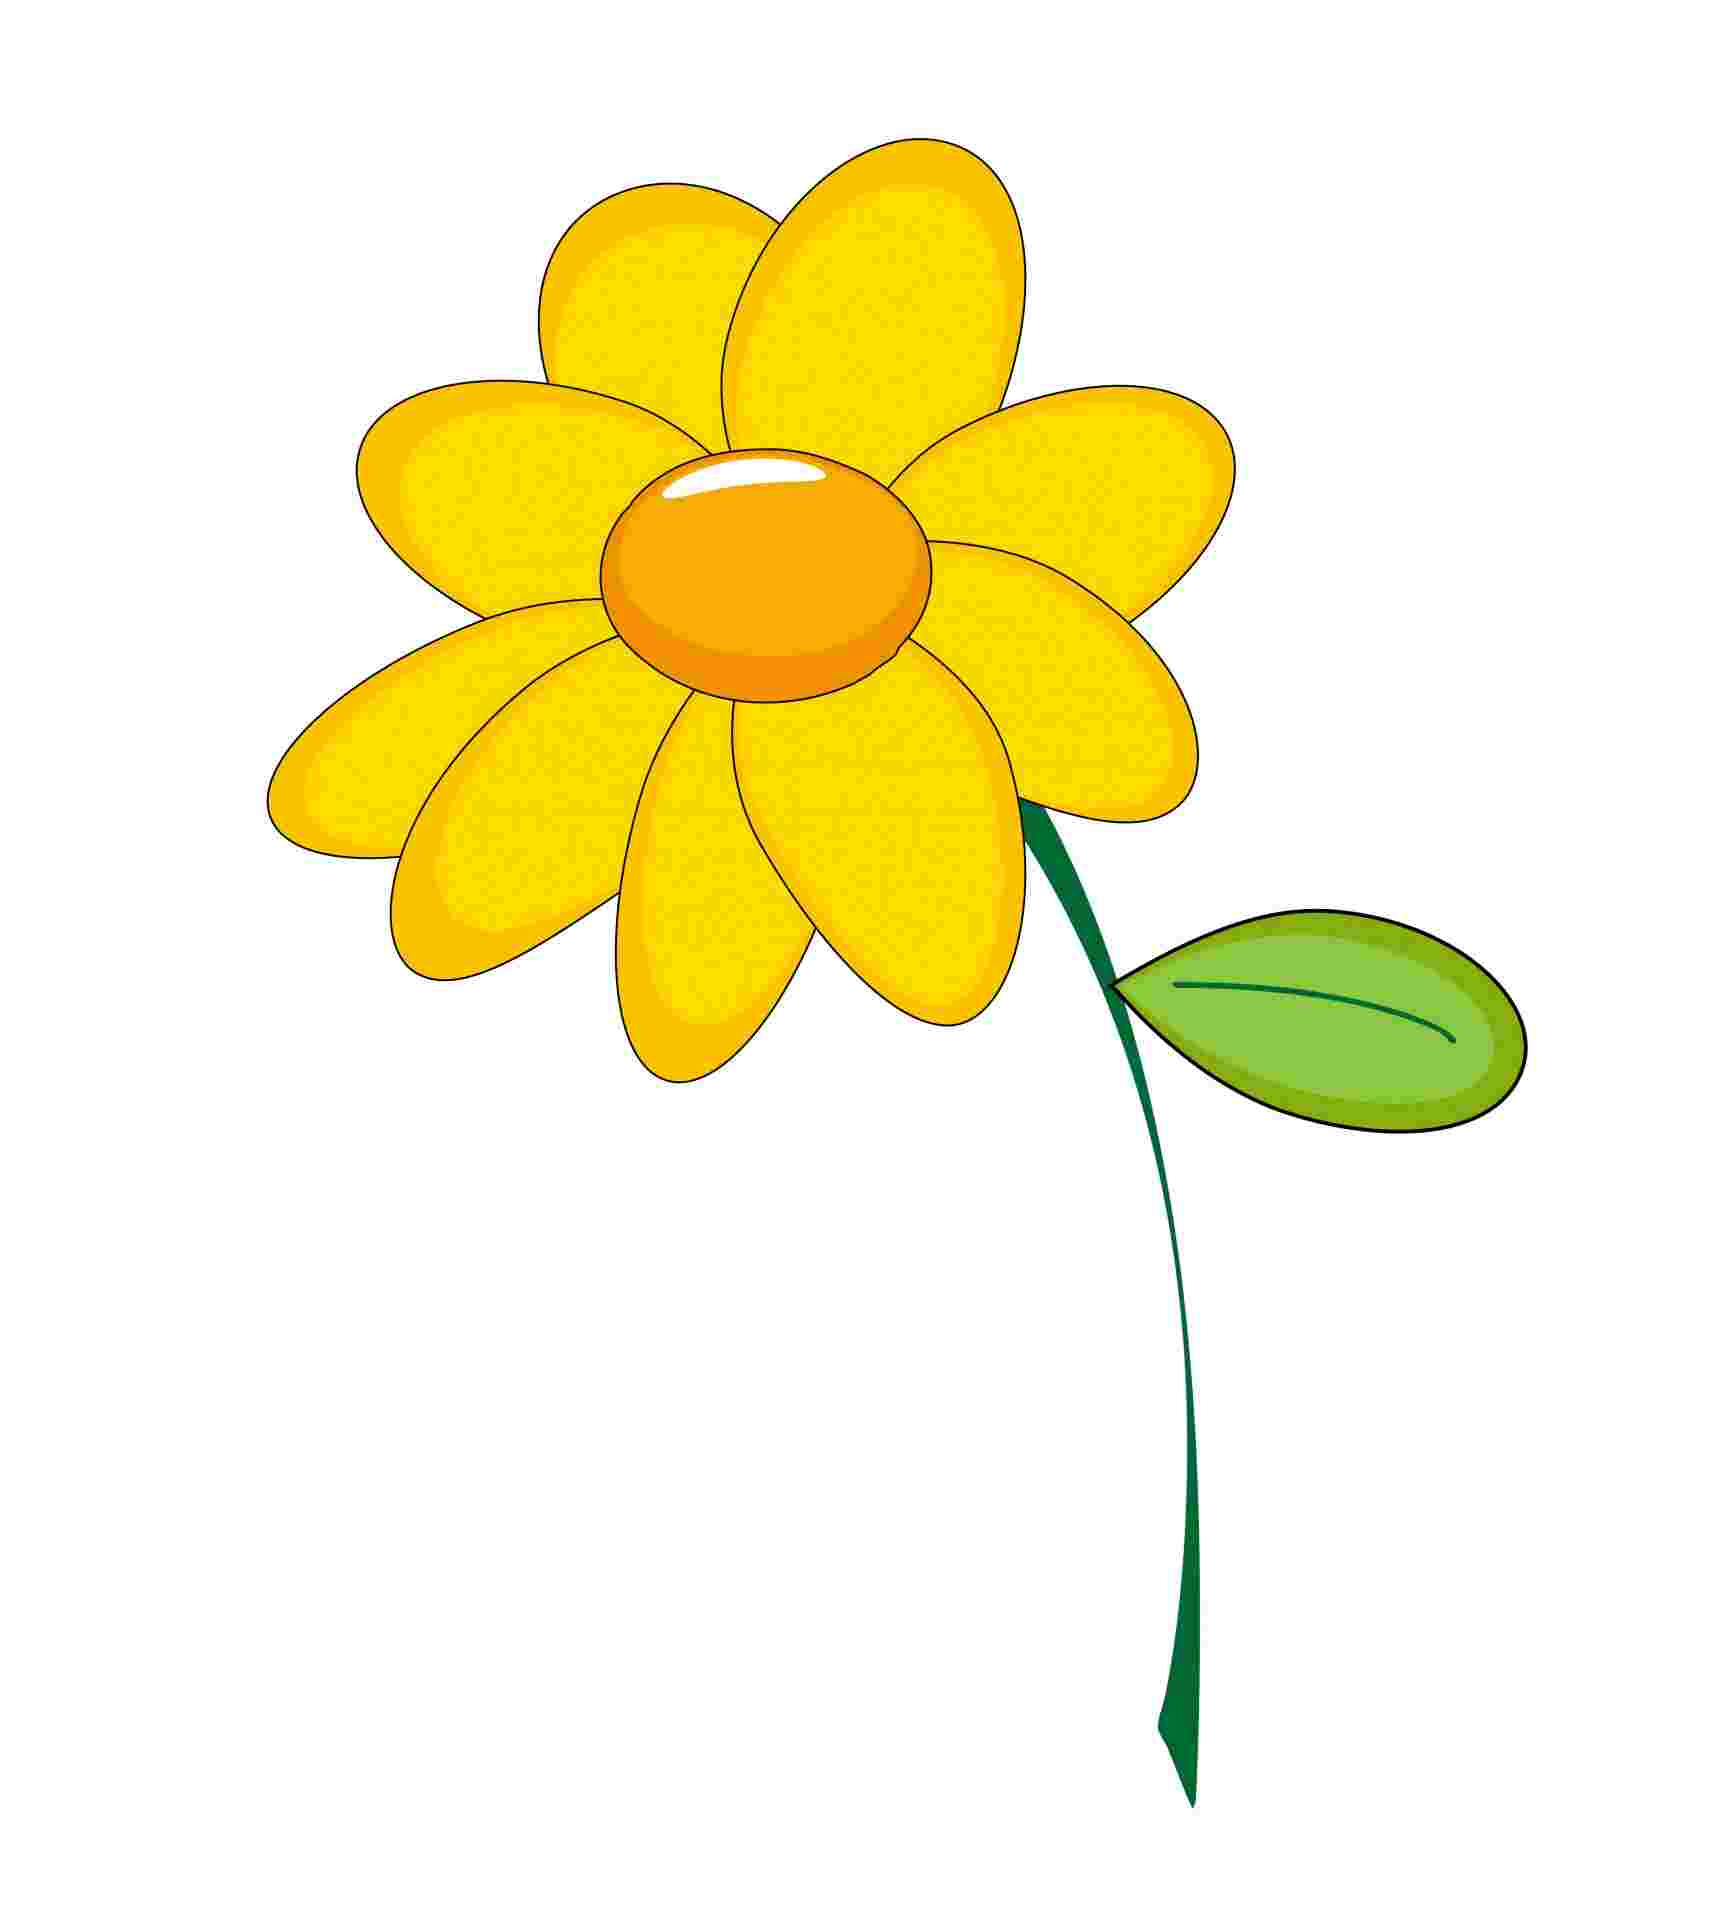 Best Cliparts: Flowers Clipart Image Flower Clip Art At.